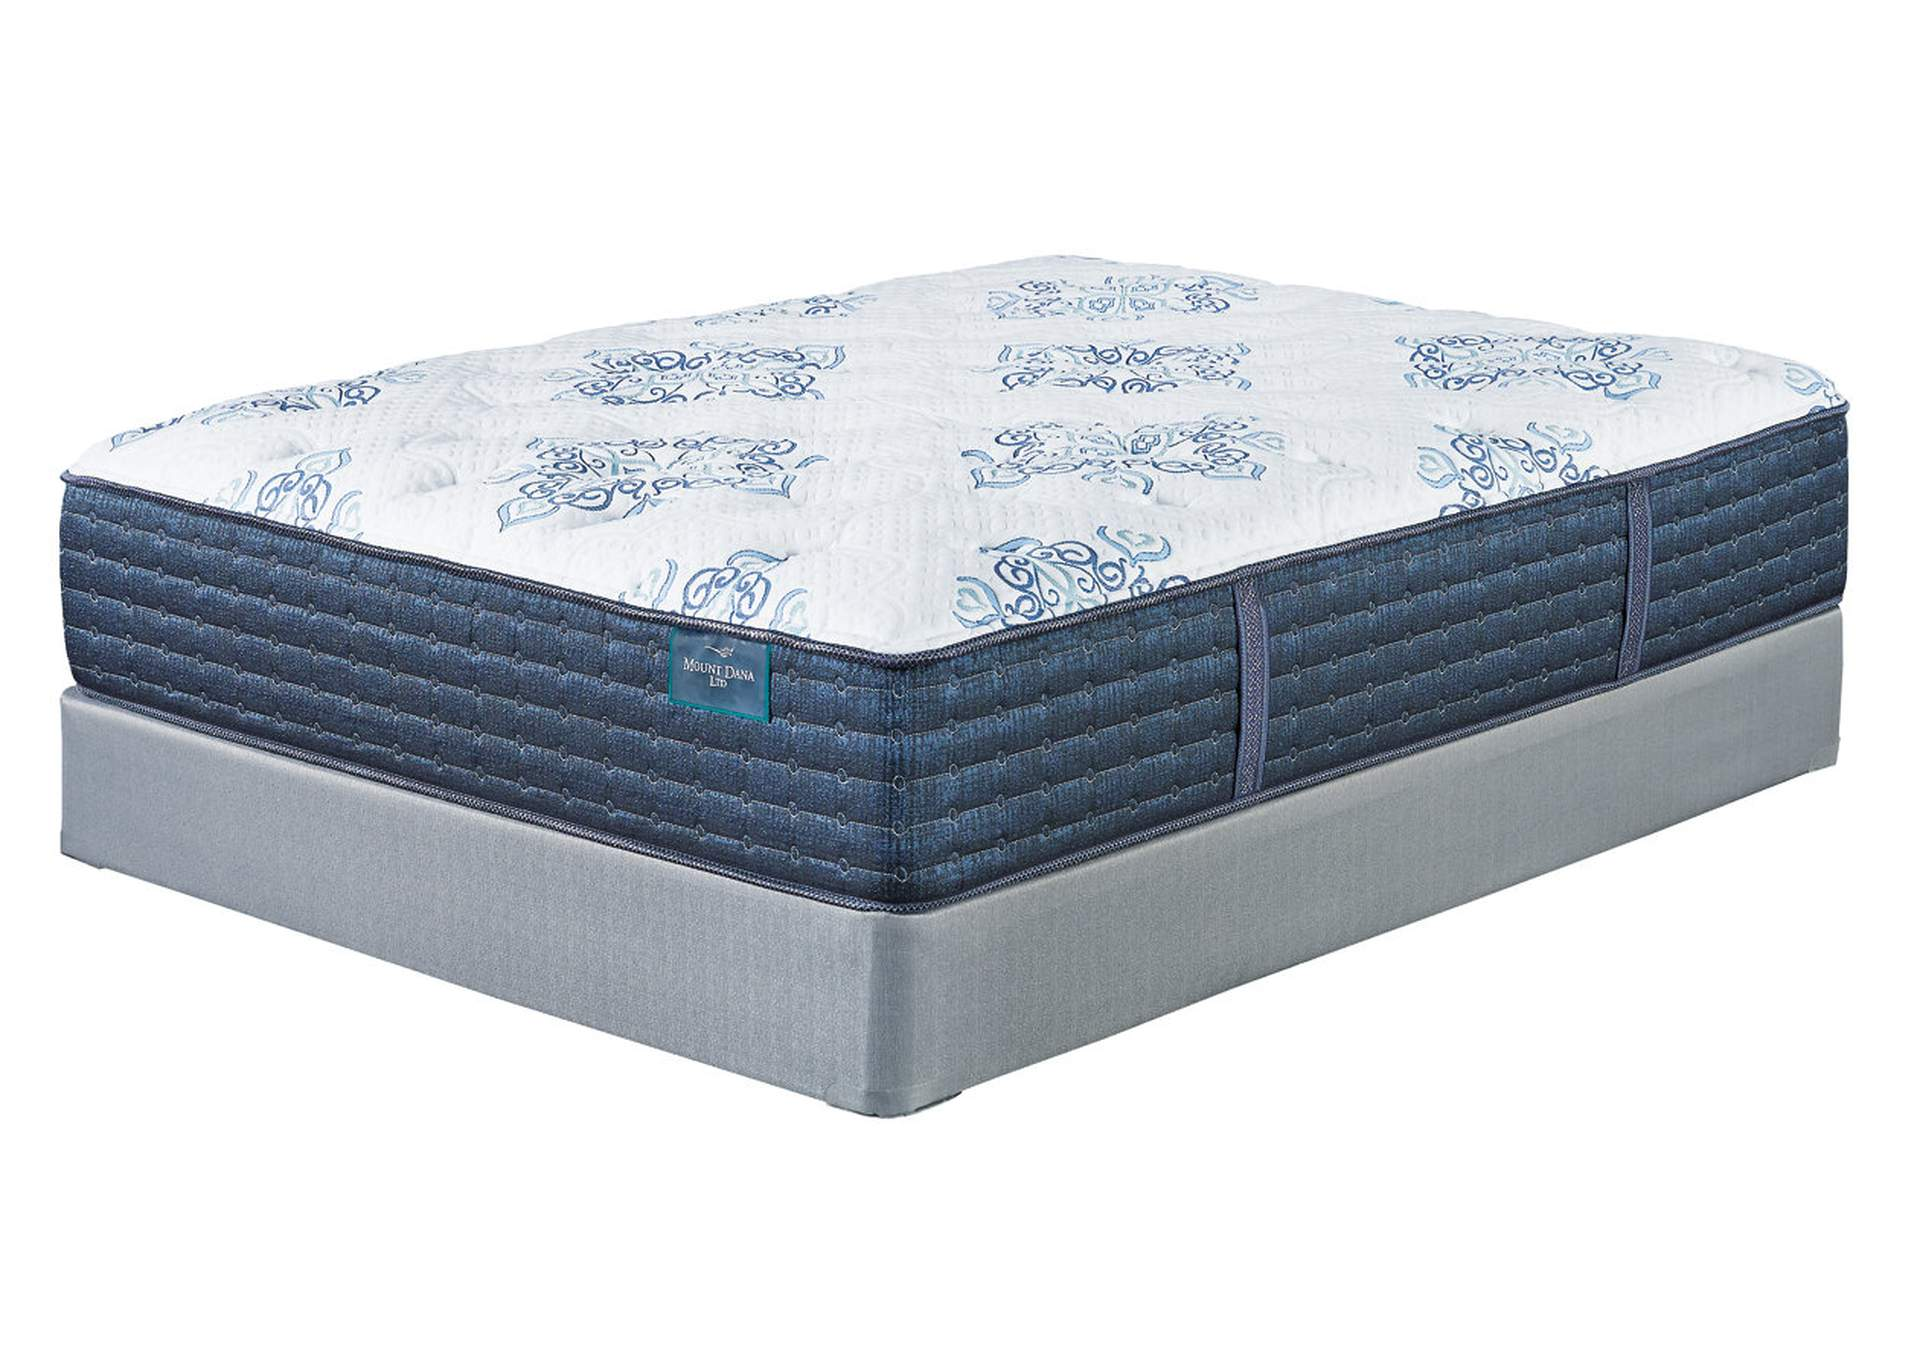 Mt. Dana Plush White King Mattress,Sierra Sleep by Ashley